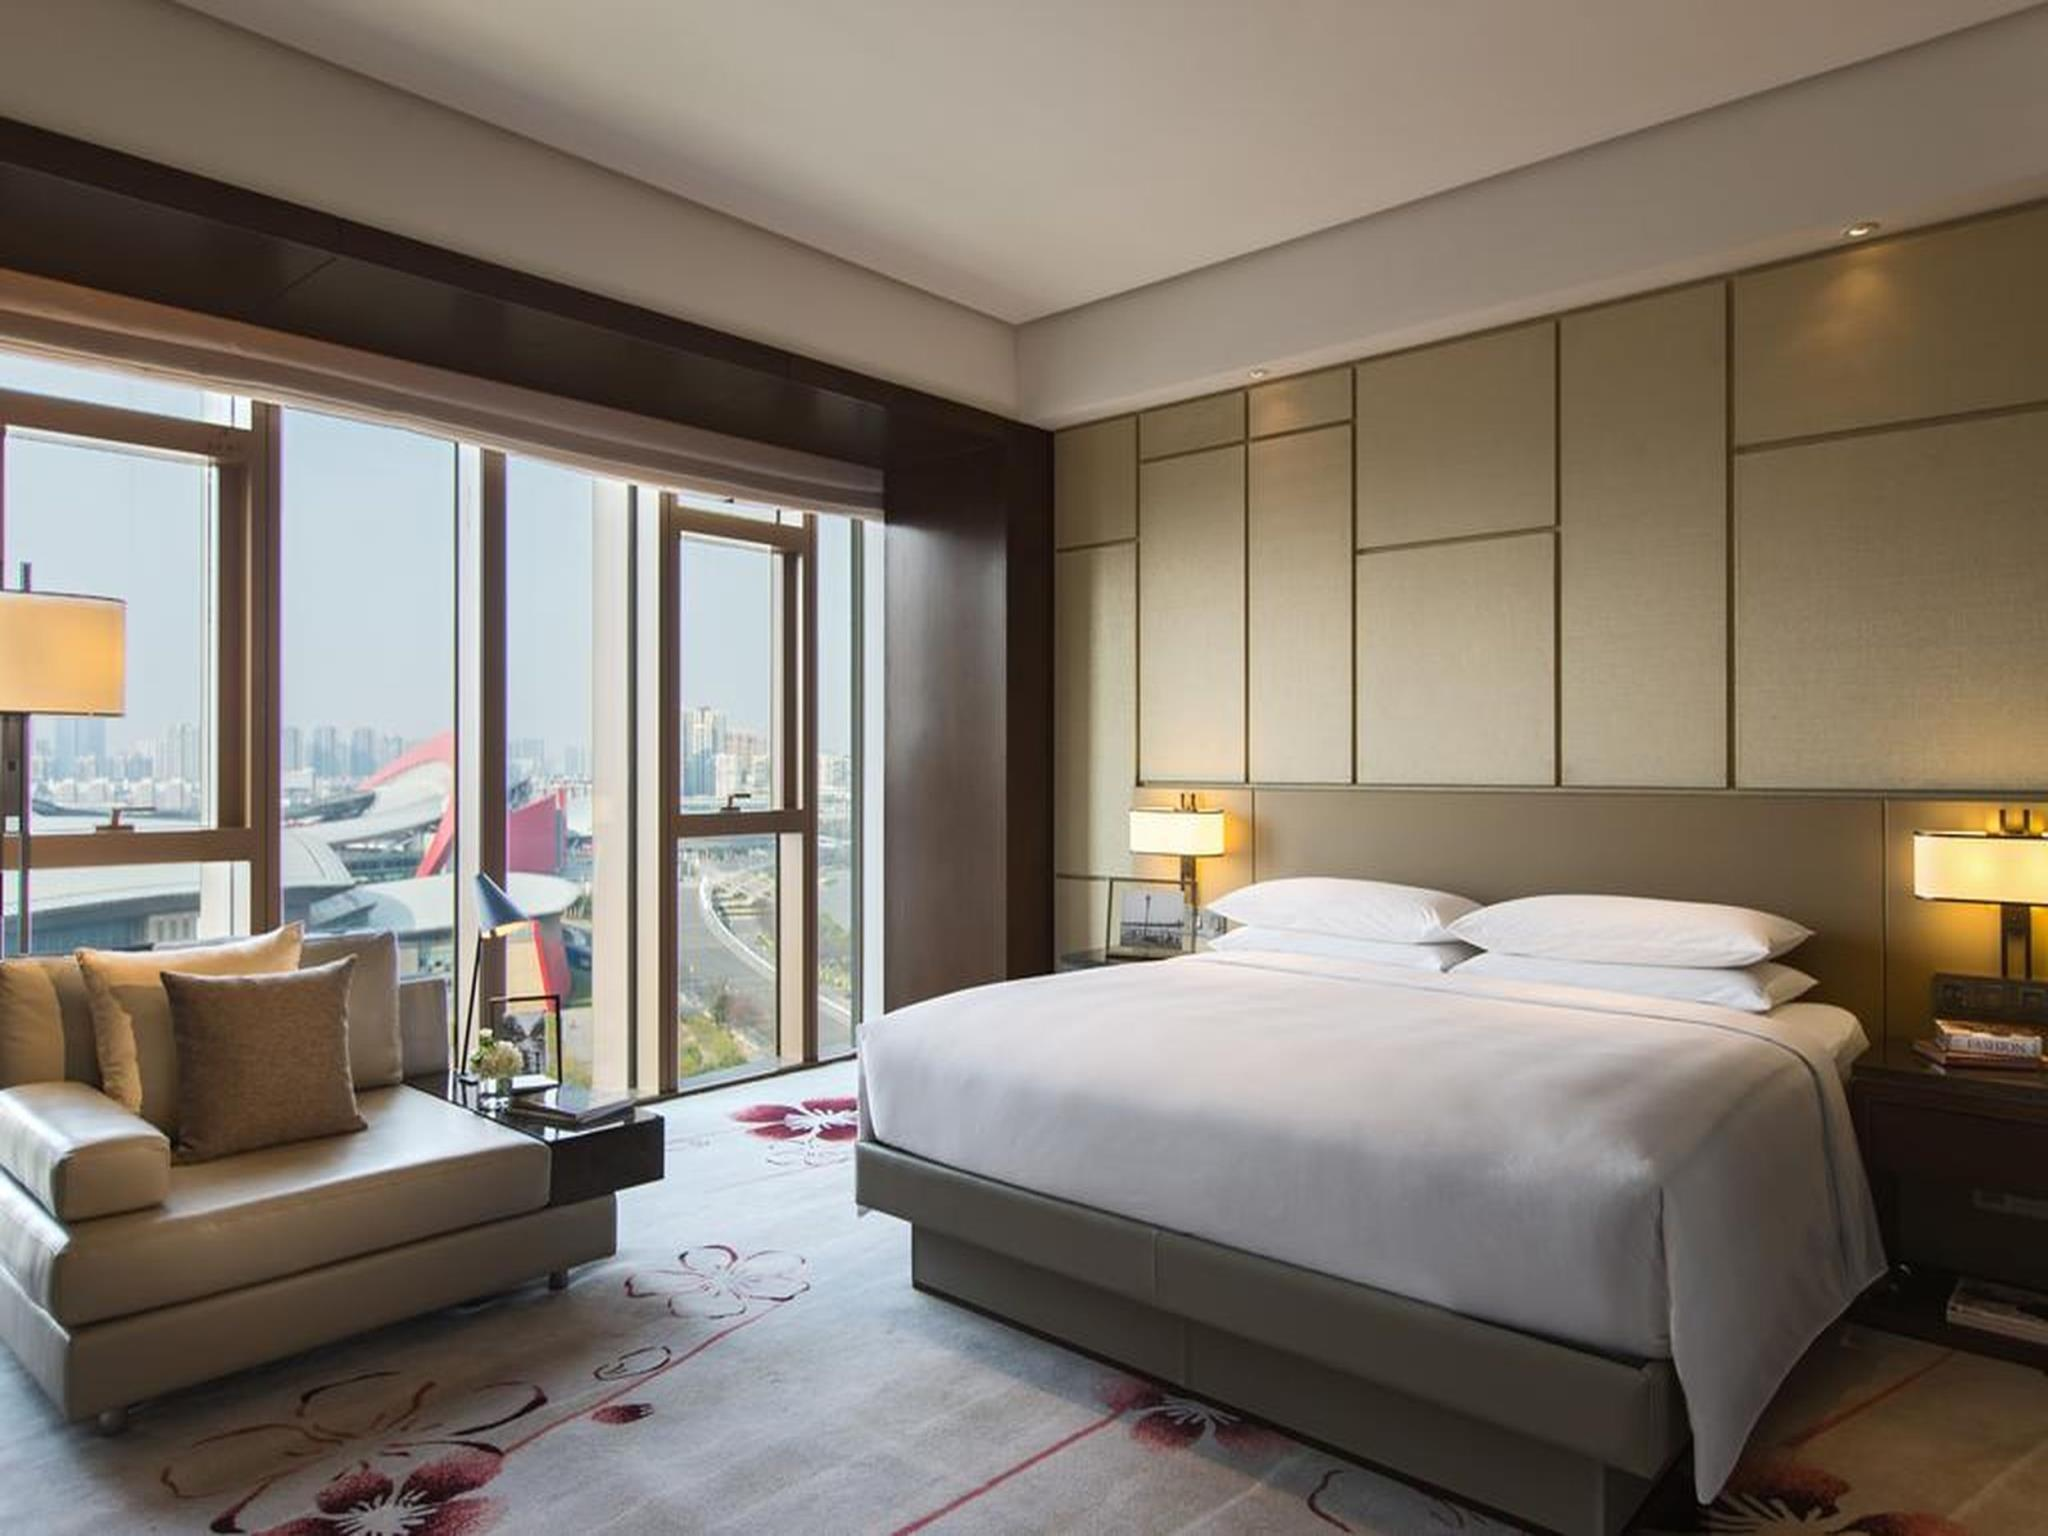 Club Room, Club lounge access, Guest room, City view